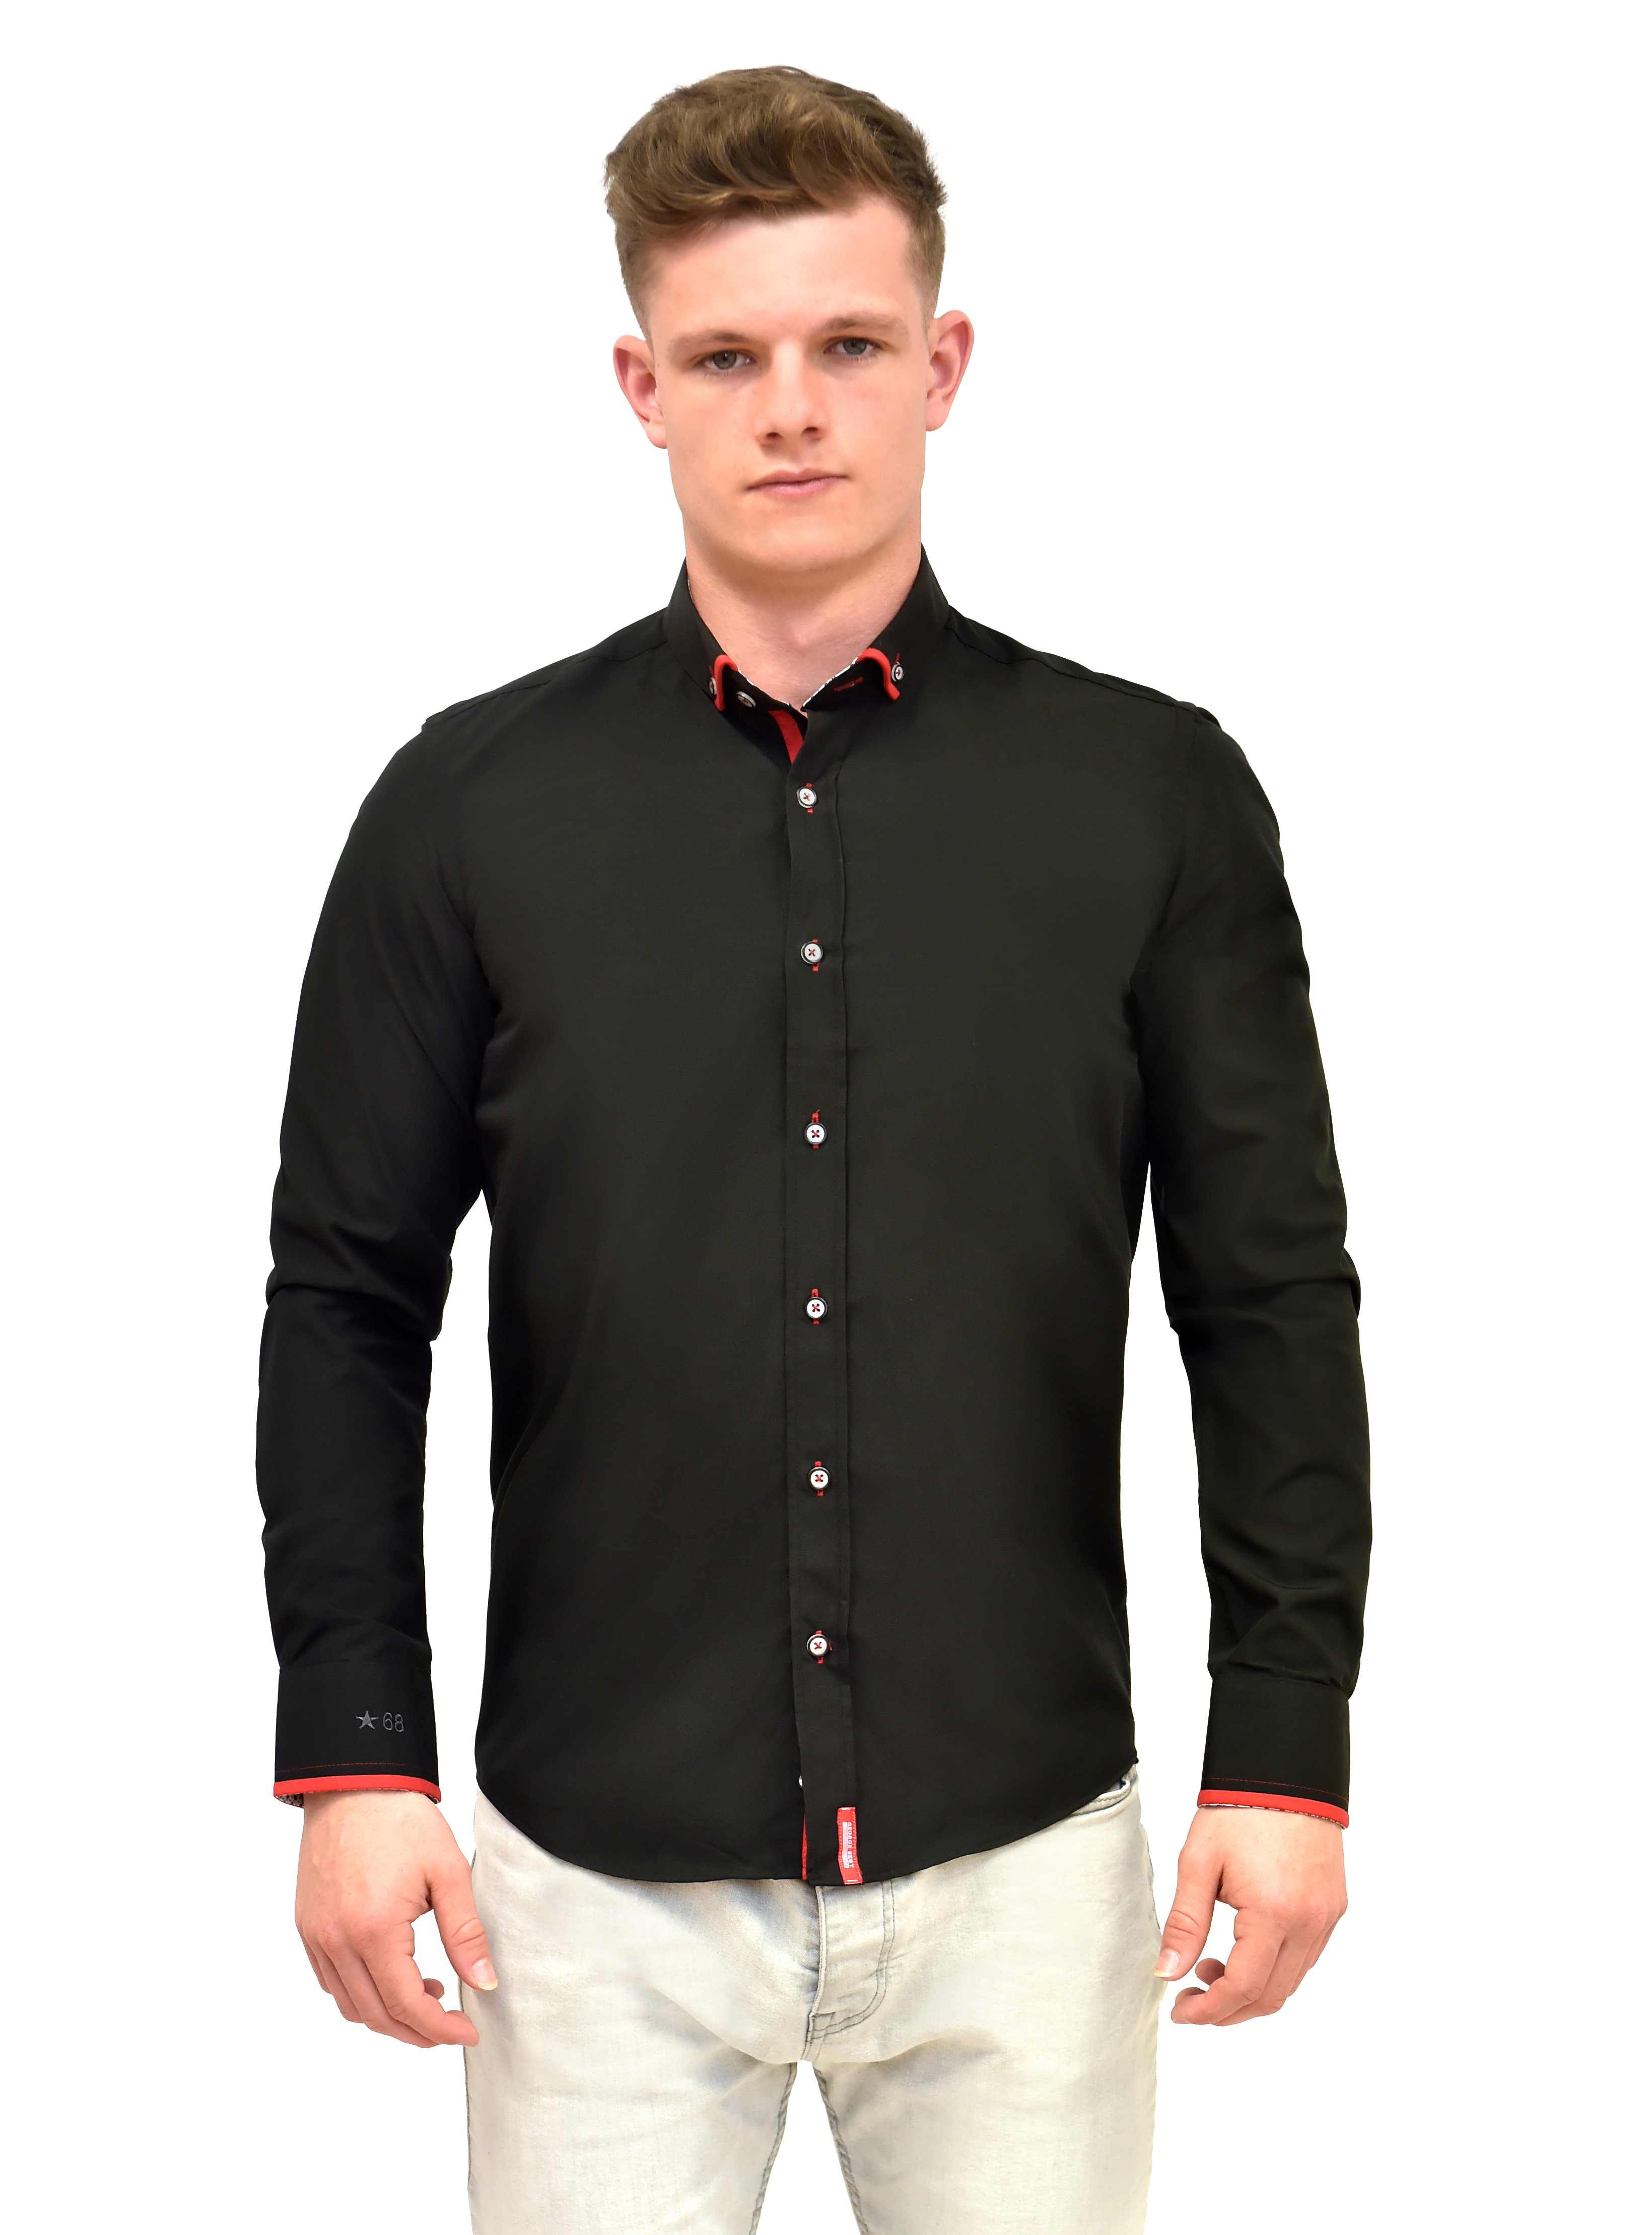 Tailored fit black shirt with red trim button down collar for Best online tailored shirts